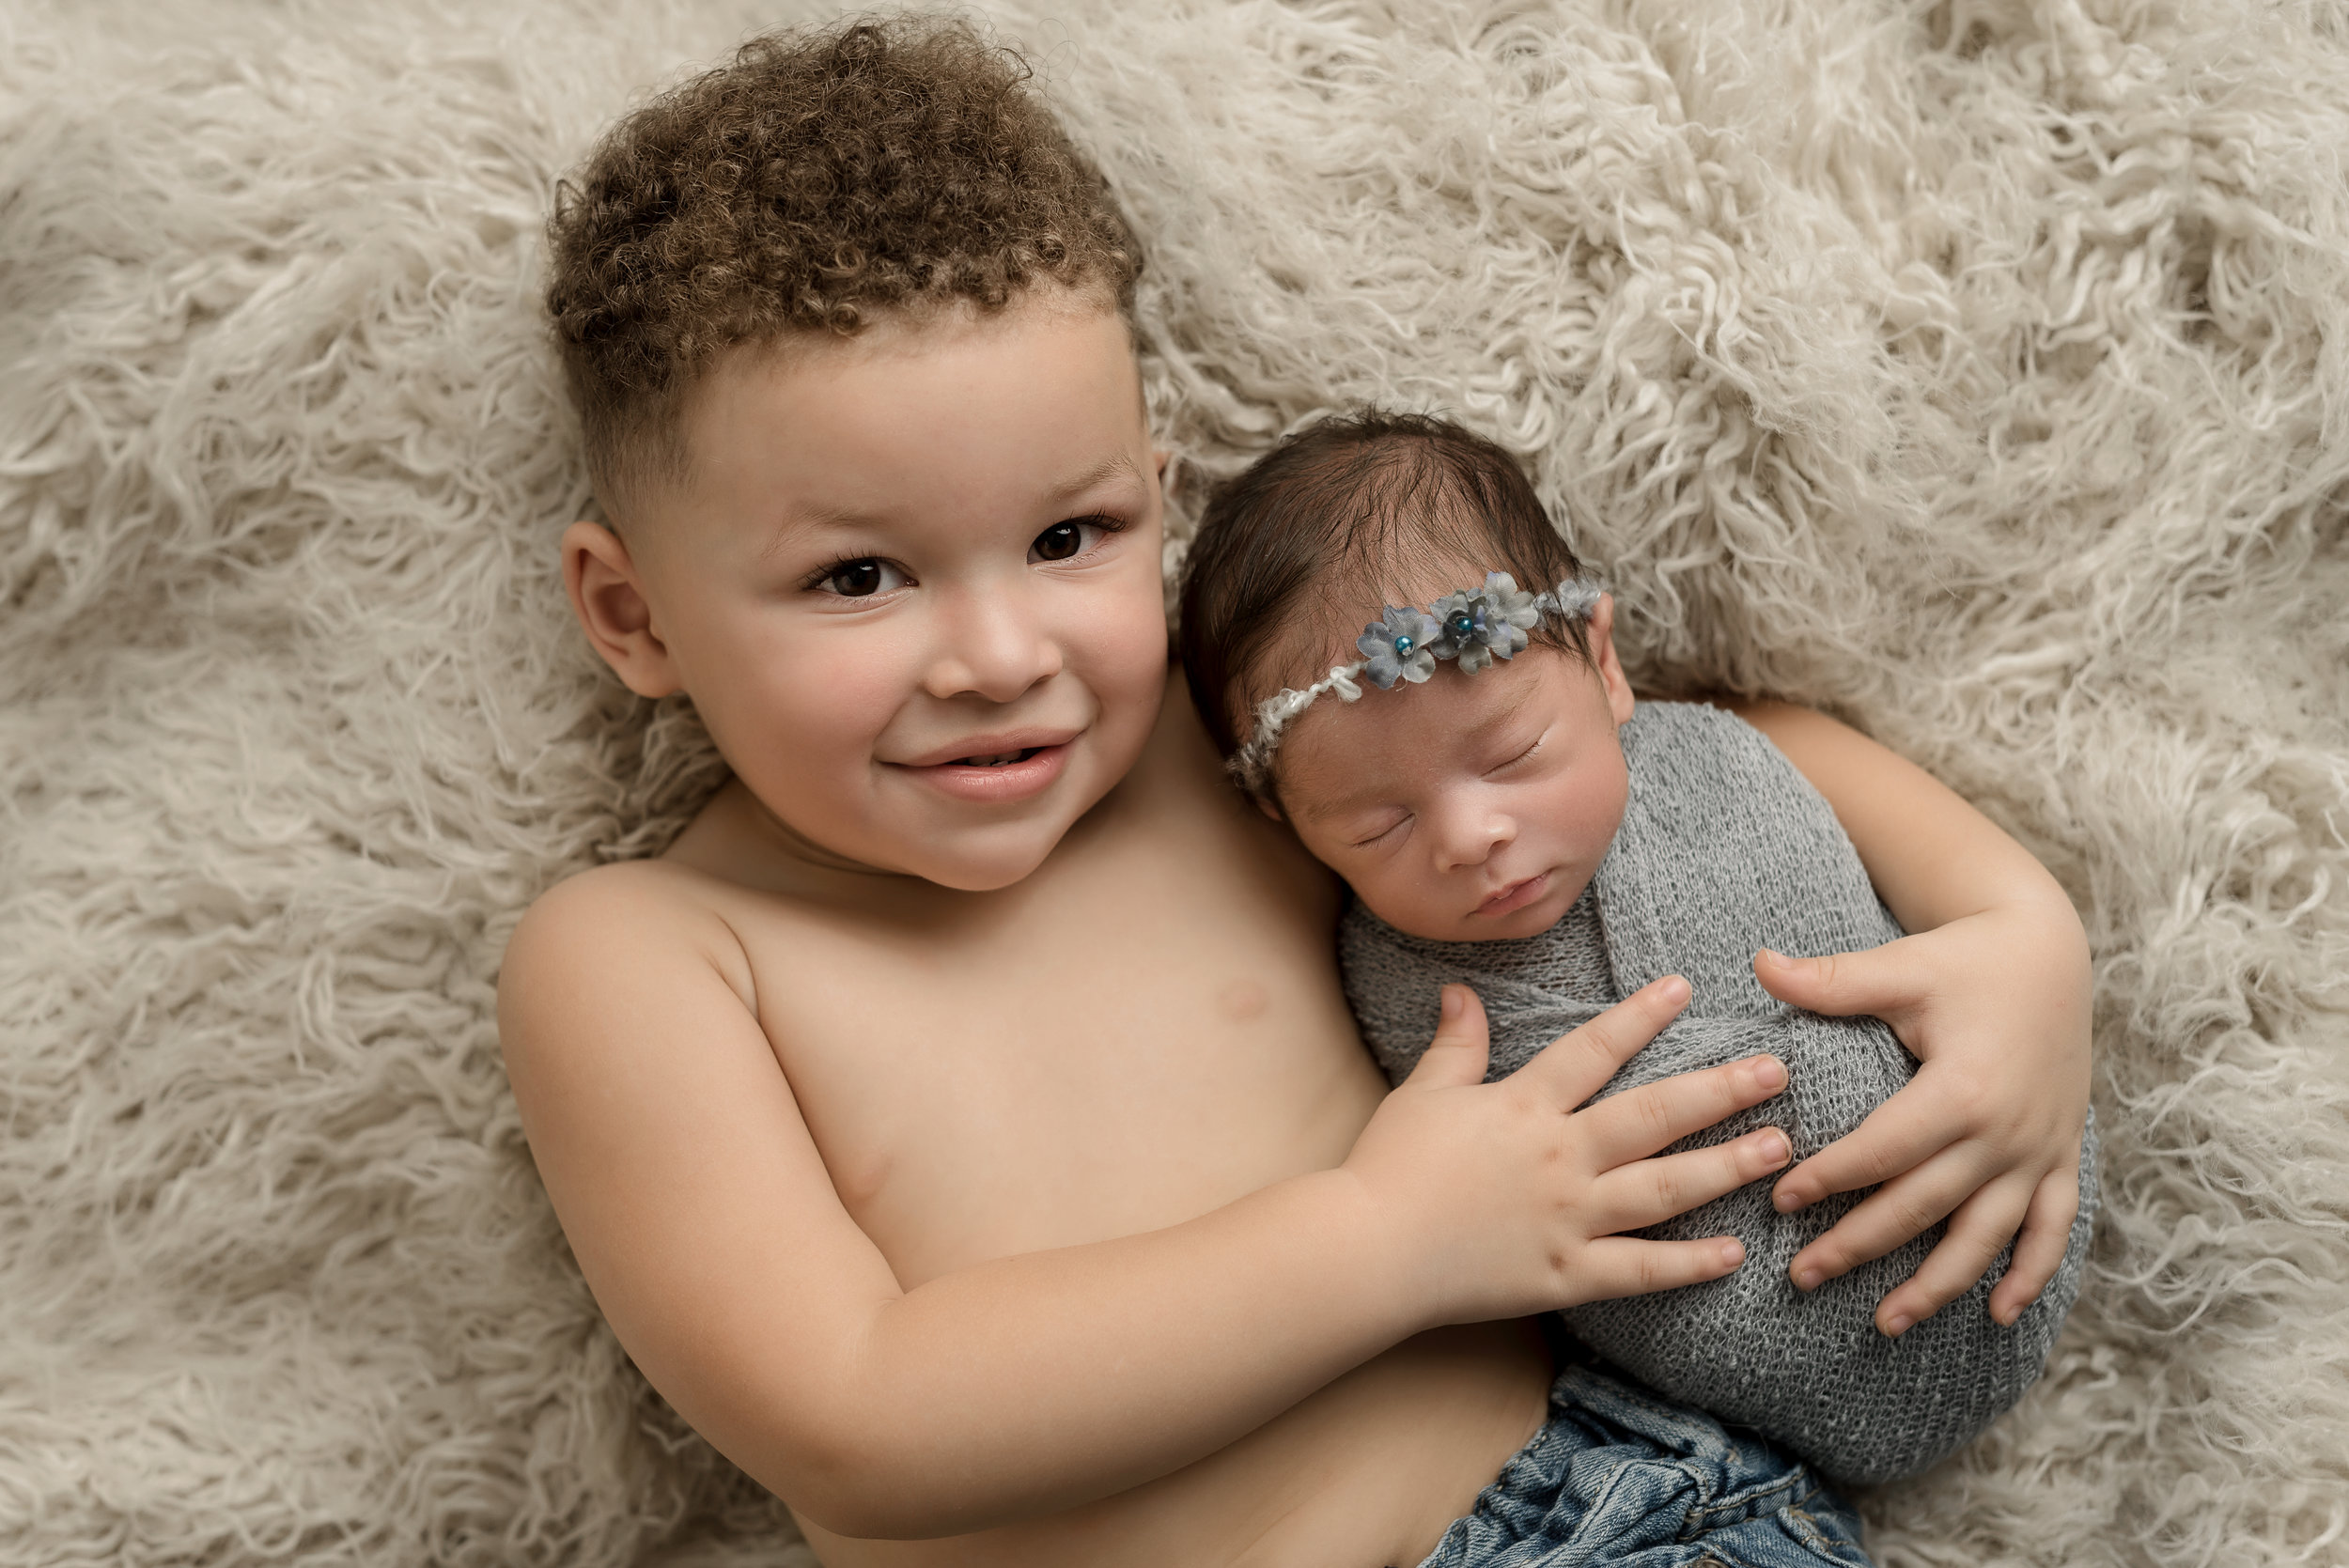 big brother loving his new baby sister at junebug photography studio in manhattan, ks